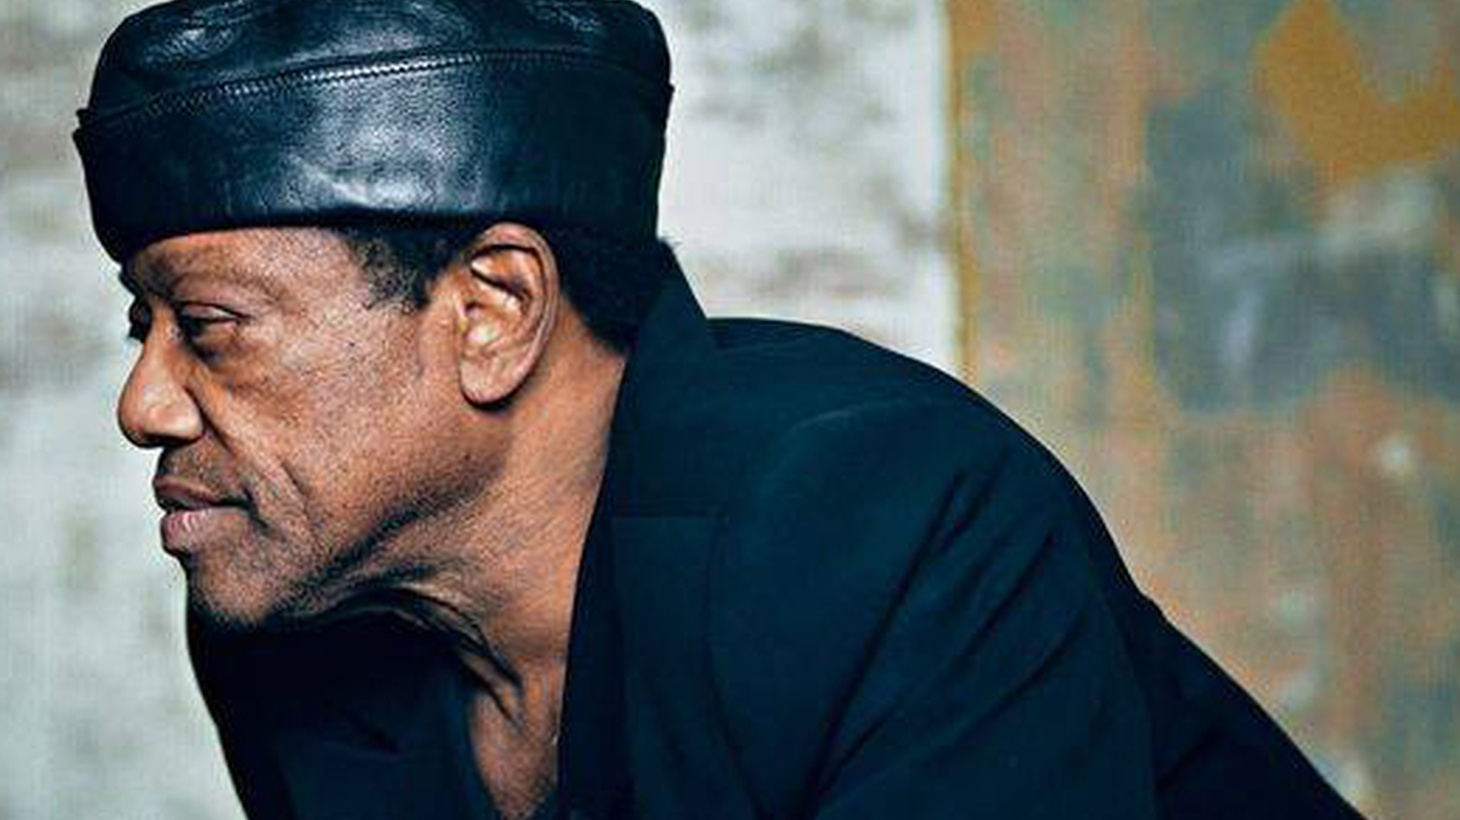 KCRW DJ Mathieu Schreyer pays tribute to the legendary soul singer Bobby Womack on the day the world learned of his passing. He was 70 years old.